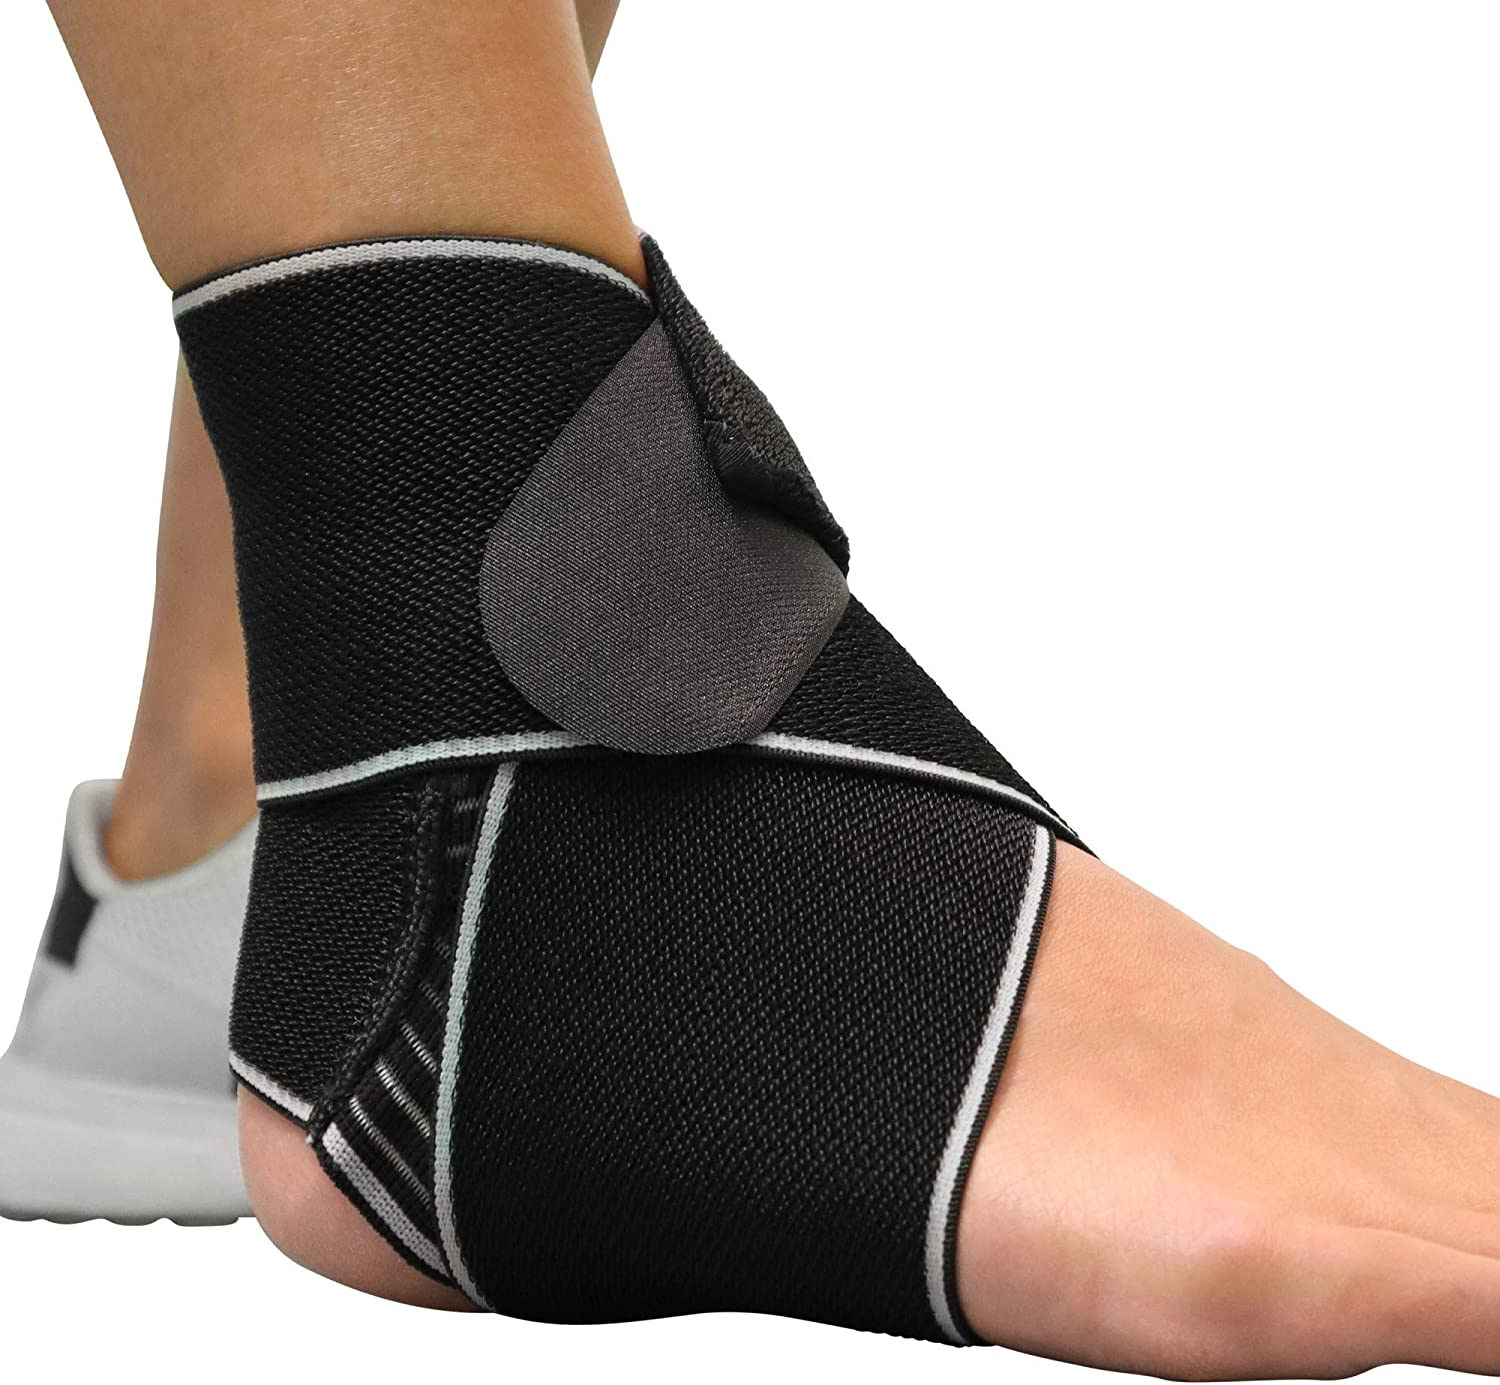 Mars Wellness latest Ankle Brace Wrap - Unisex Compression Cheap mail order sales Supp